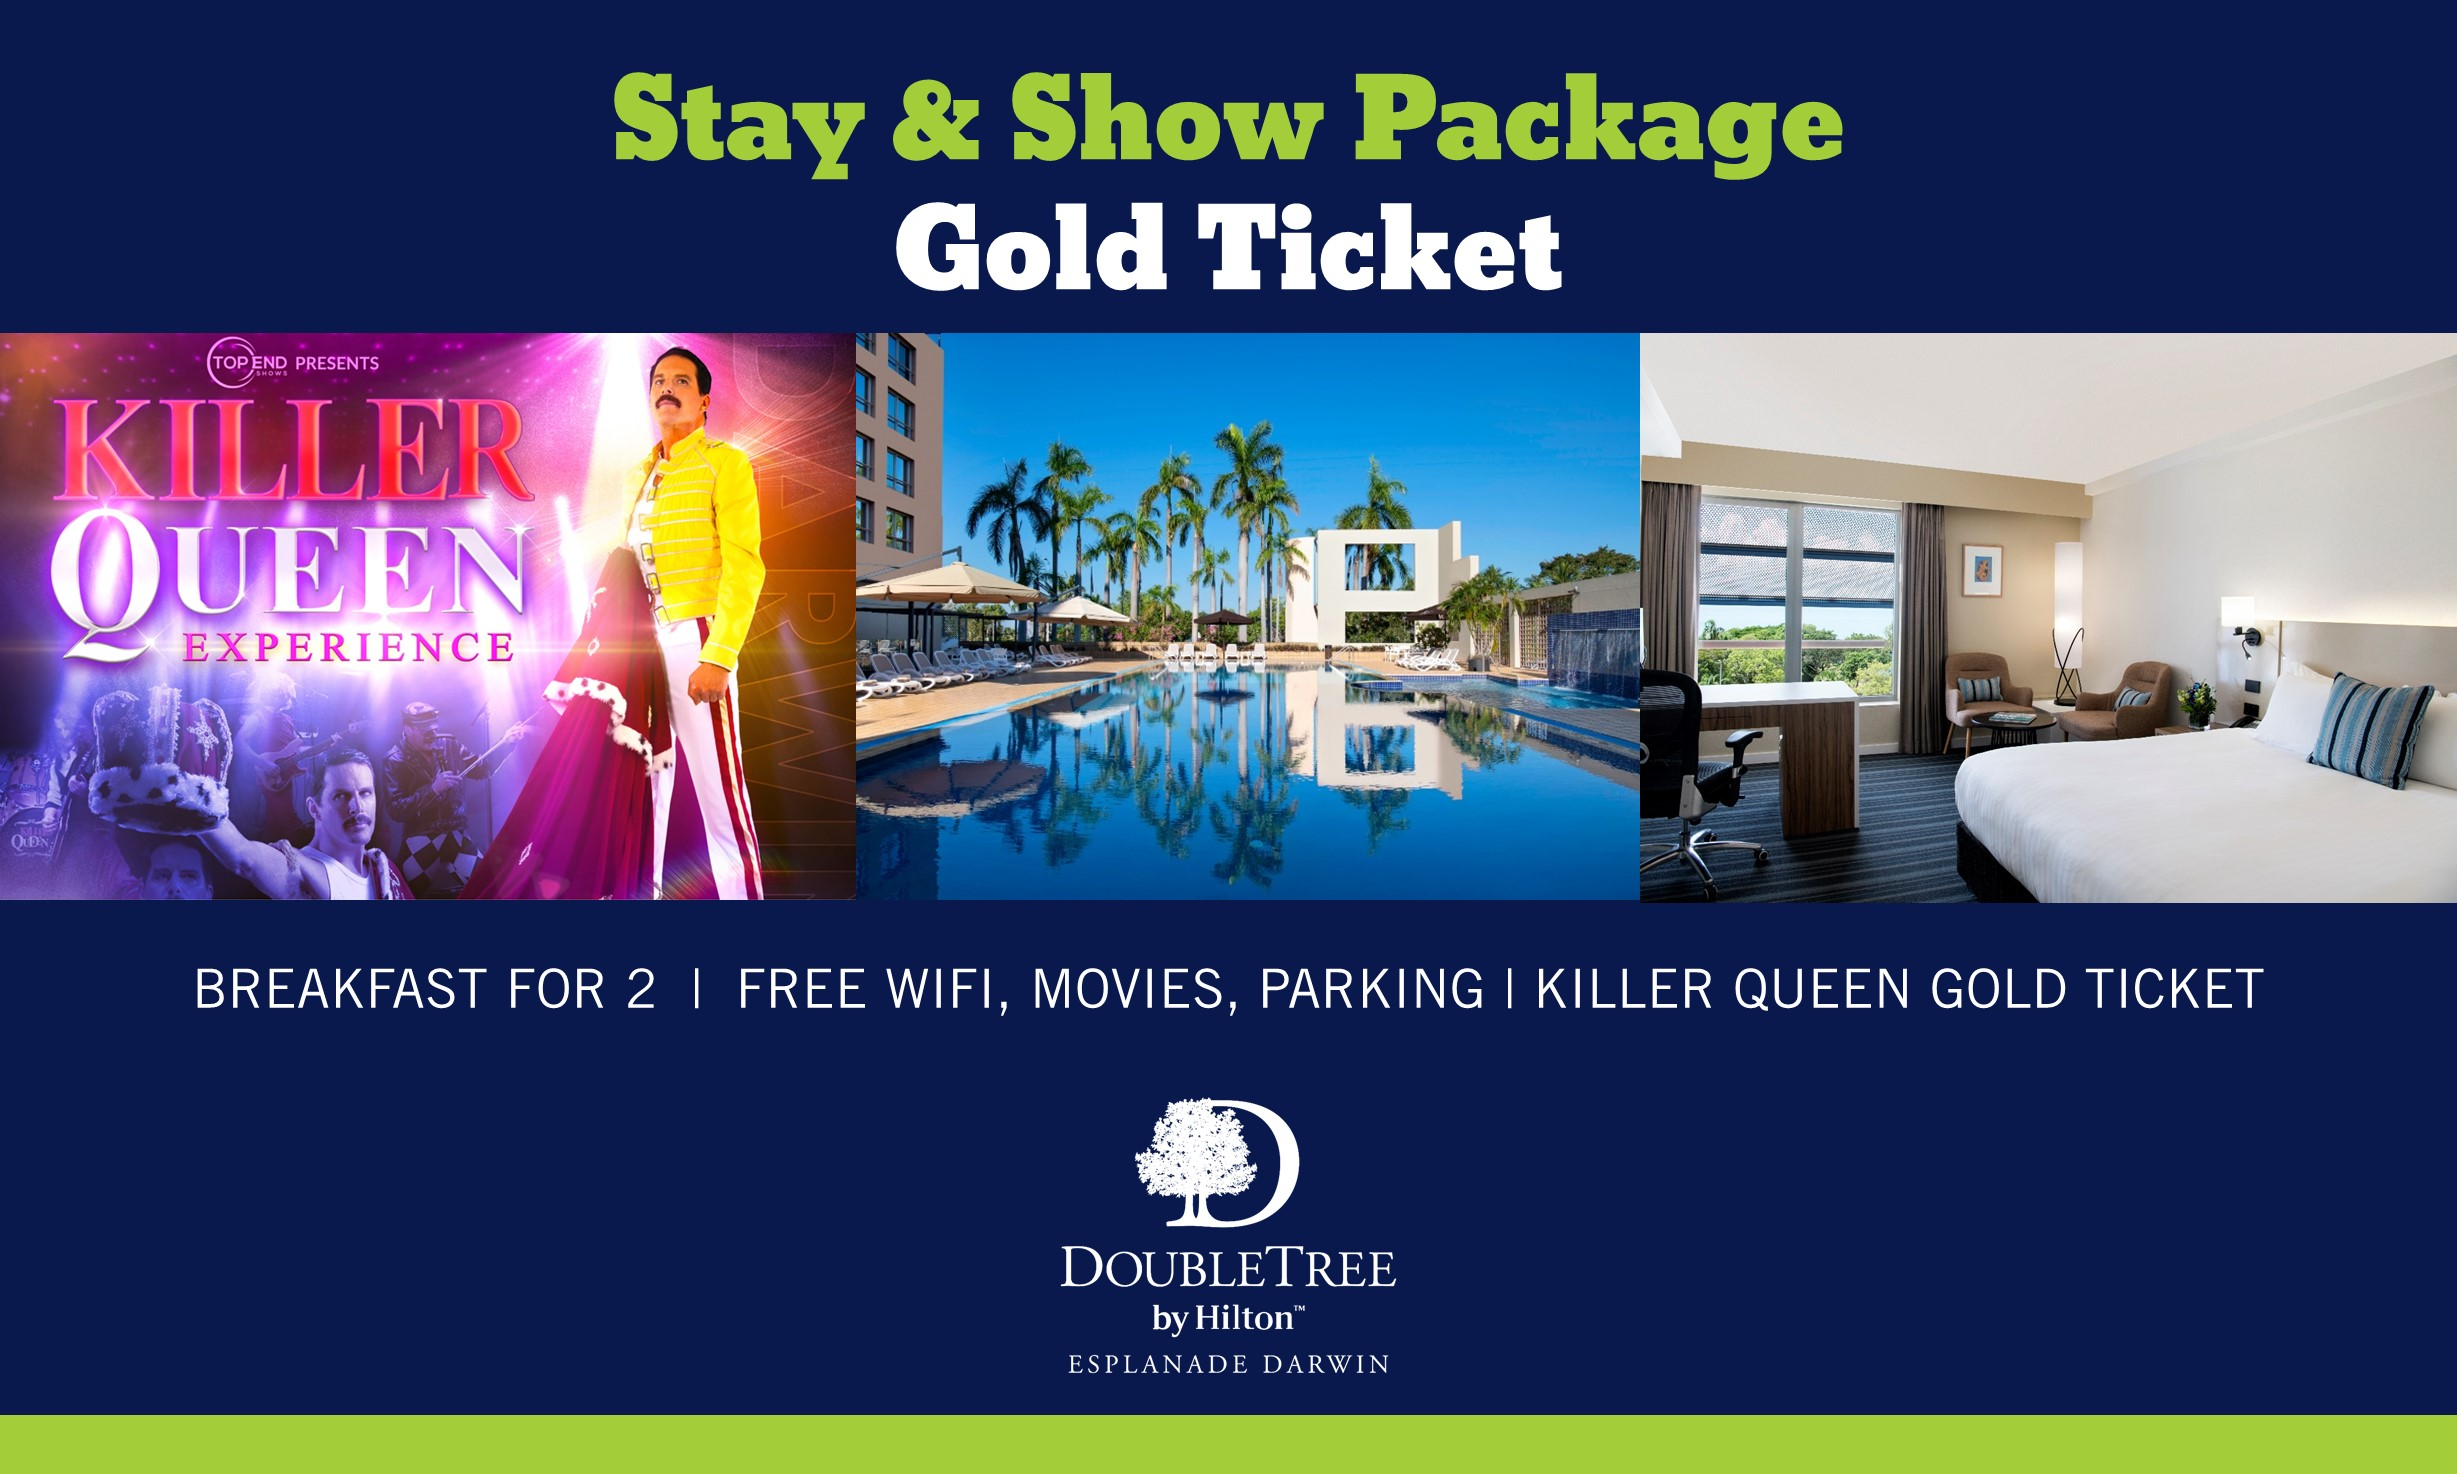 KILLER Stay & Show at DoubleTree by Hilton Esplanade Darwin (Gold Class)